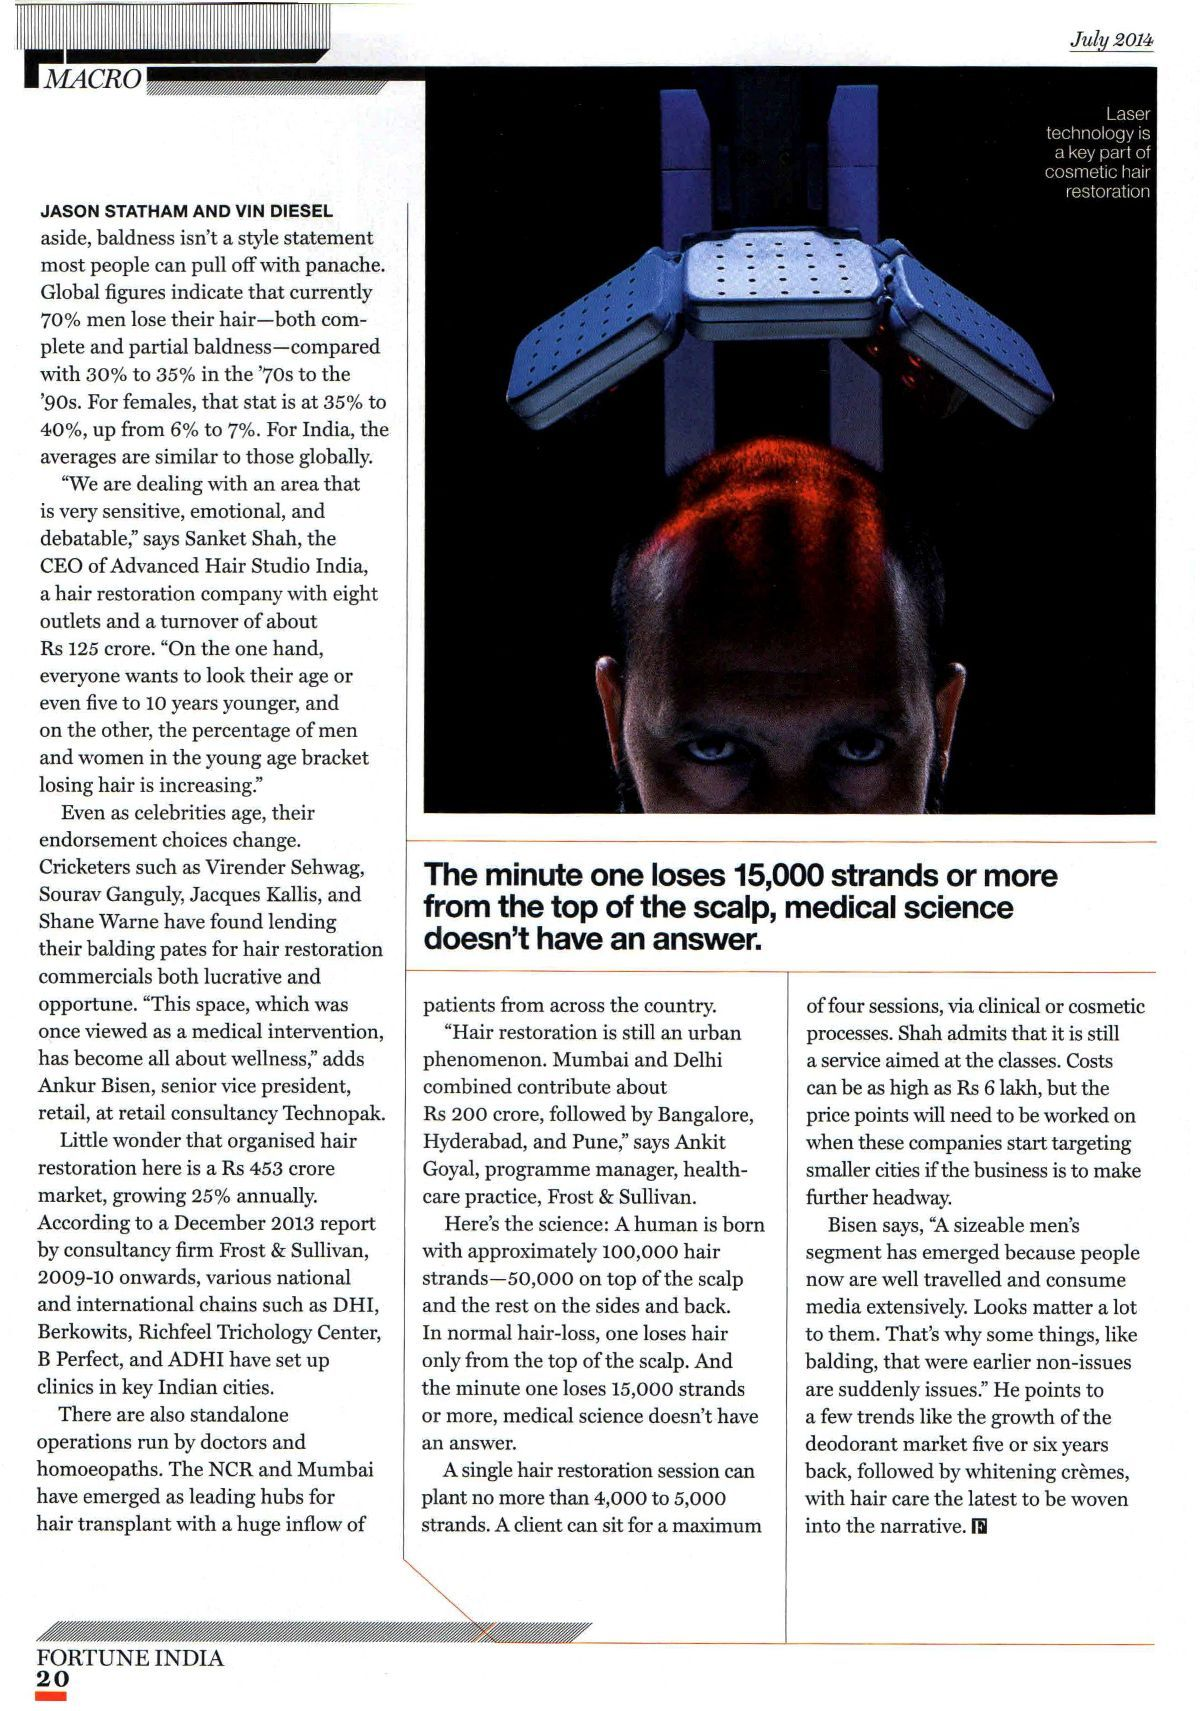 Fortune July 2014 Page20